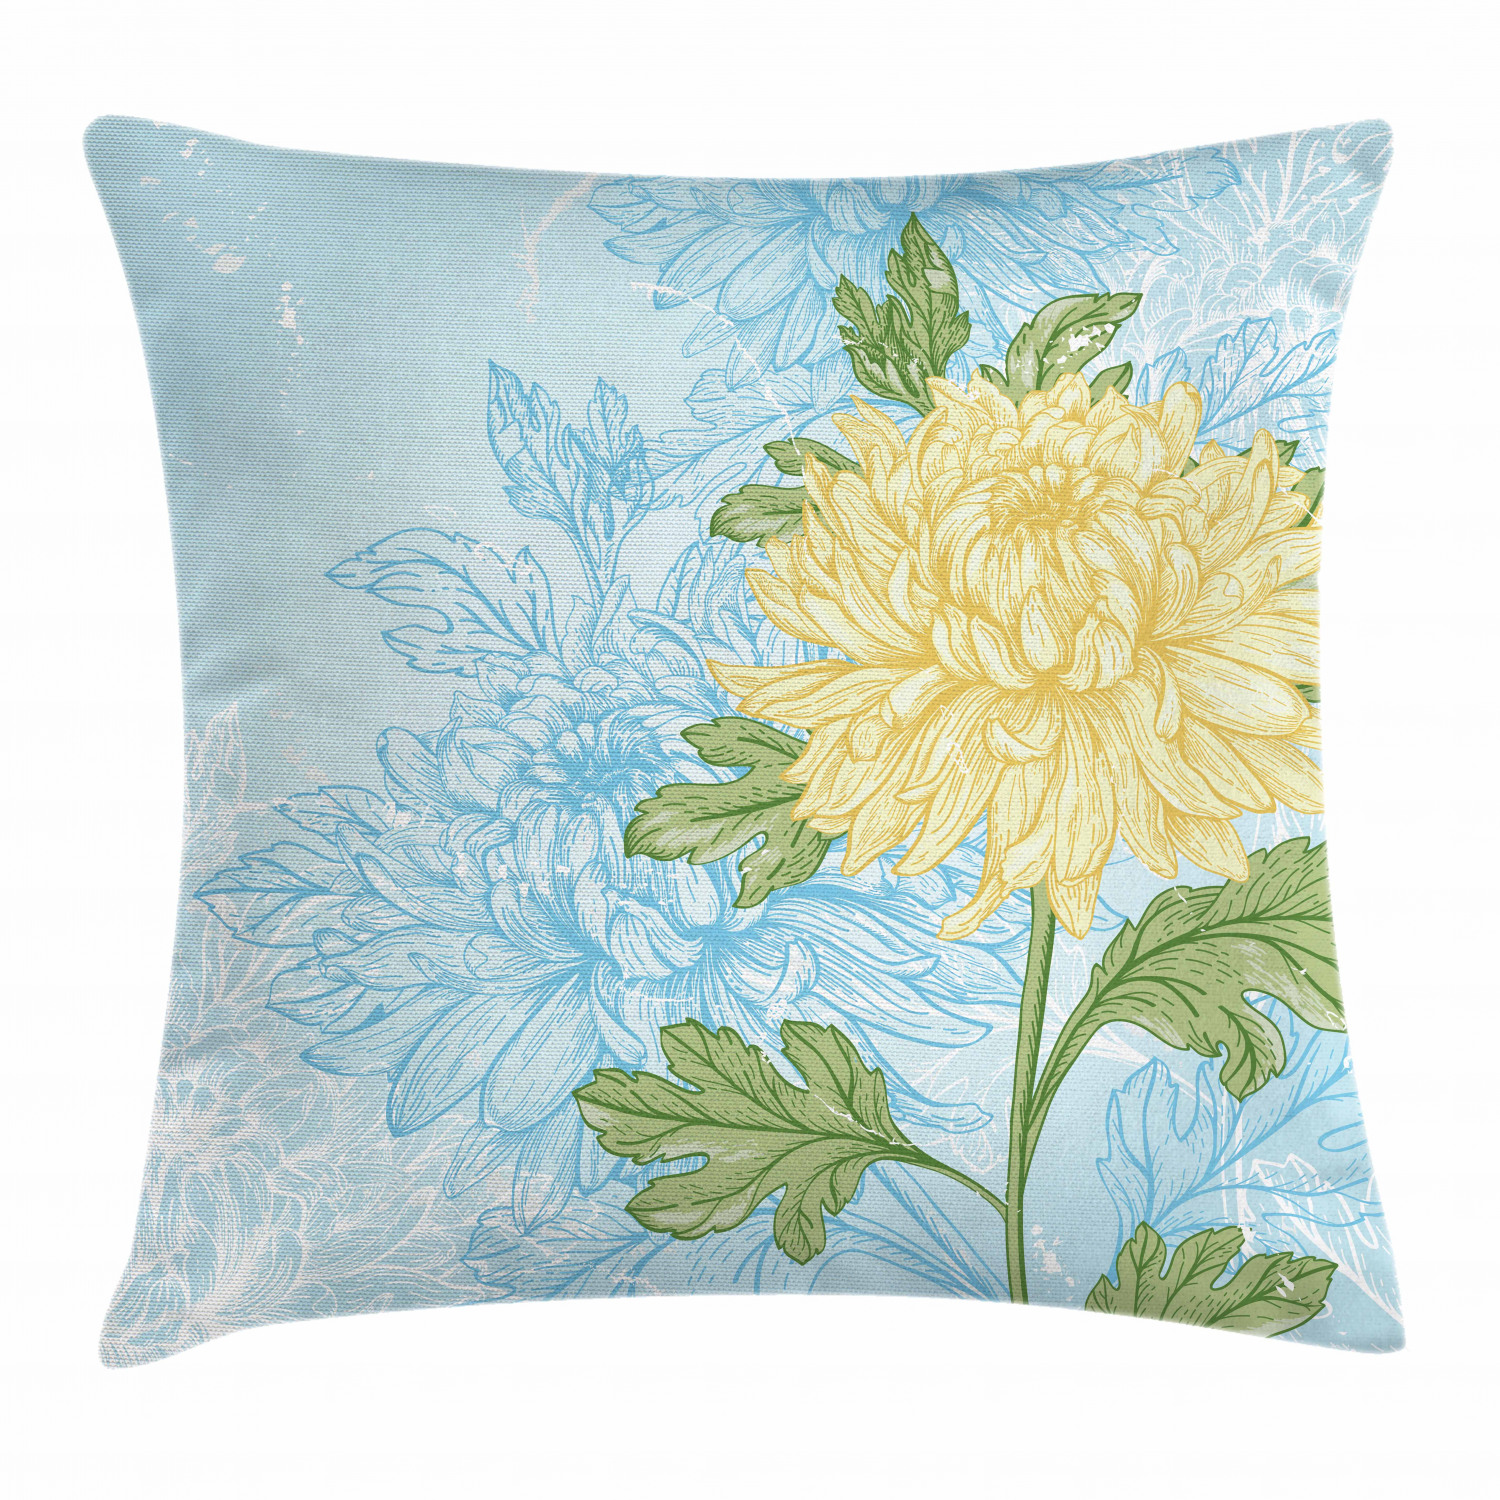 Navy And Yellow Floral Print Linen Style Throw Pillows 20x20 Spring Flower Print Accent Pillow Mothers Day Gift Floral Throw Pillow